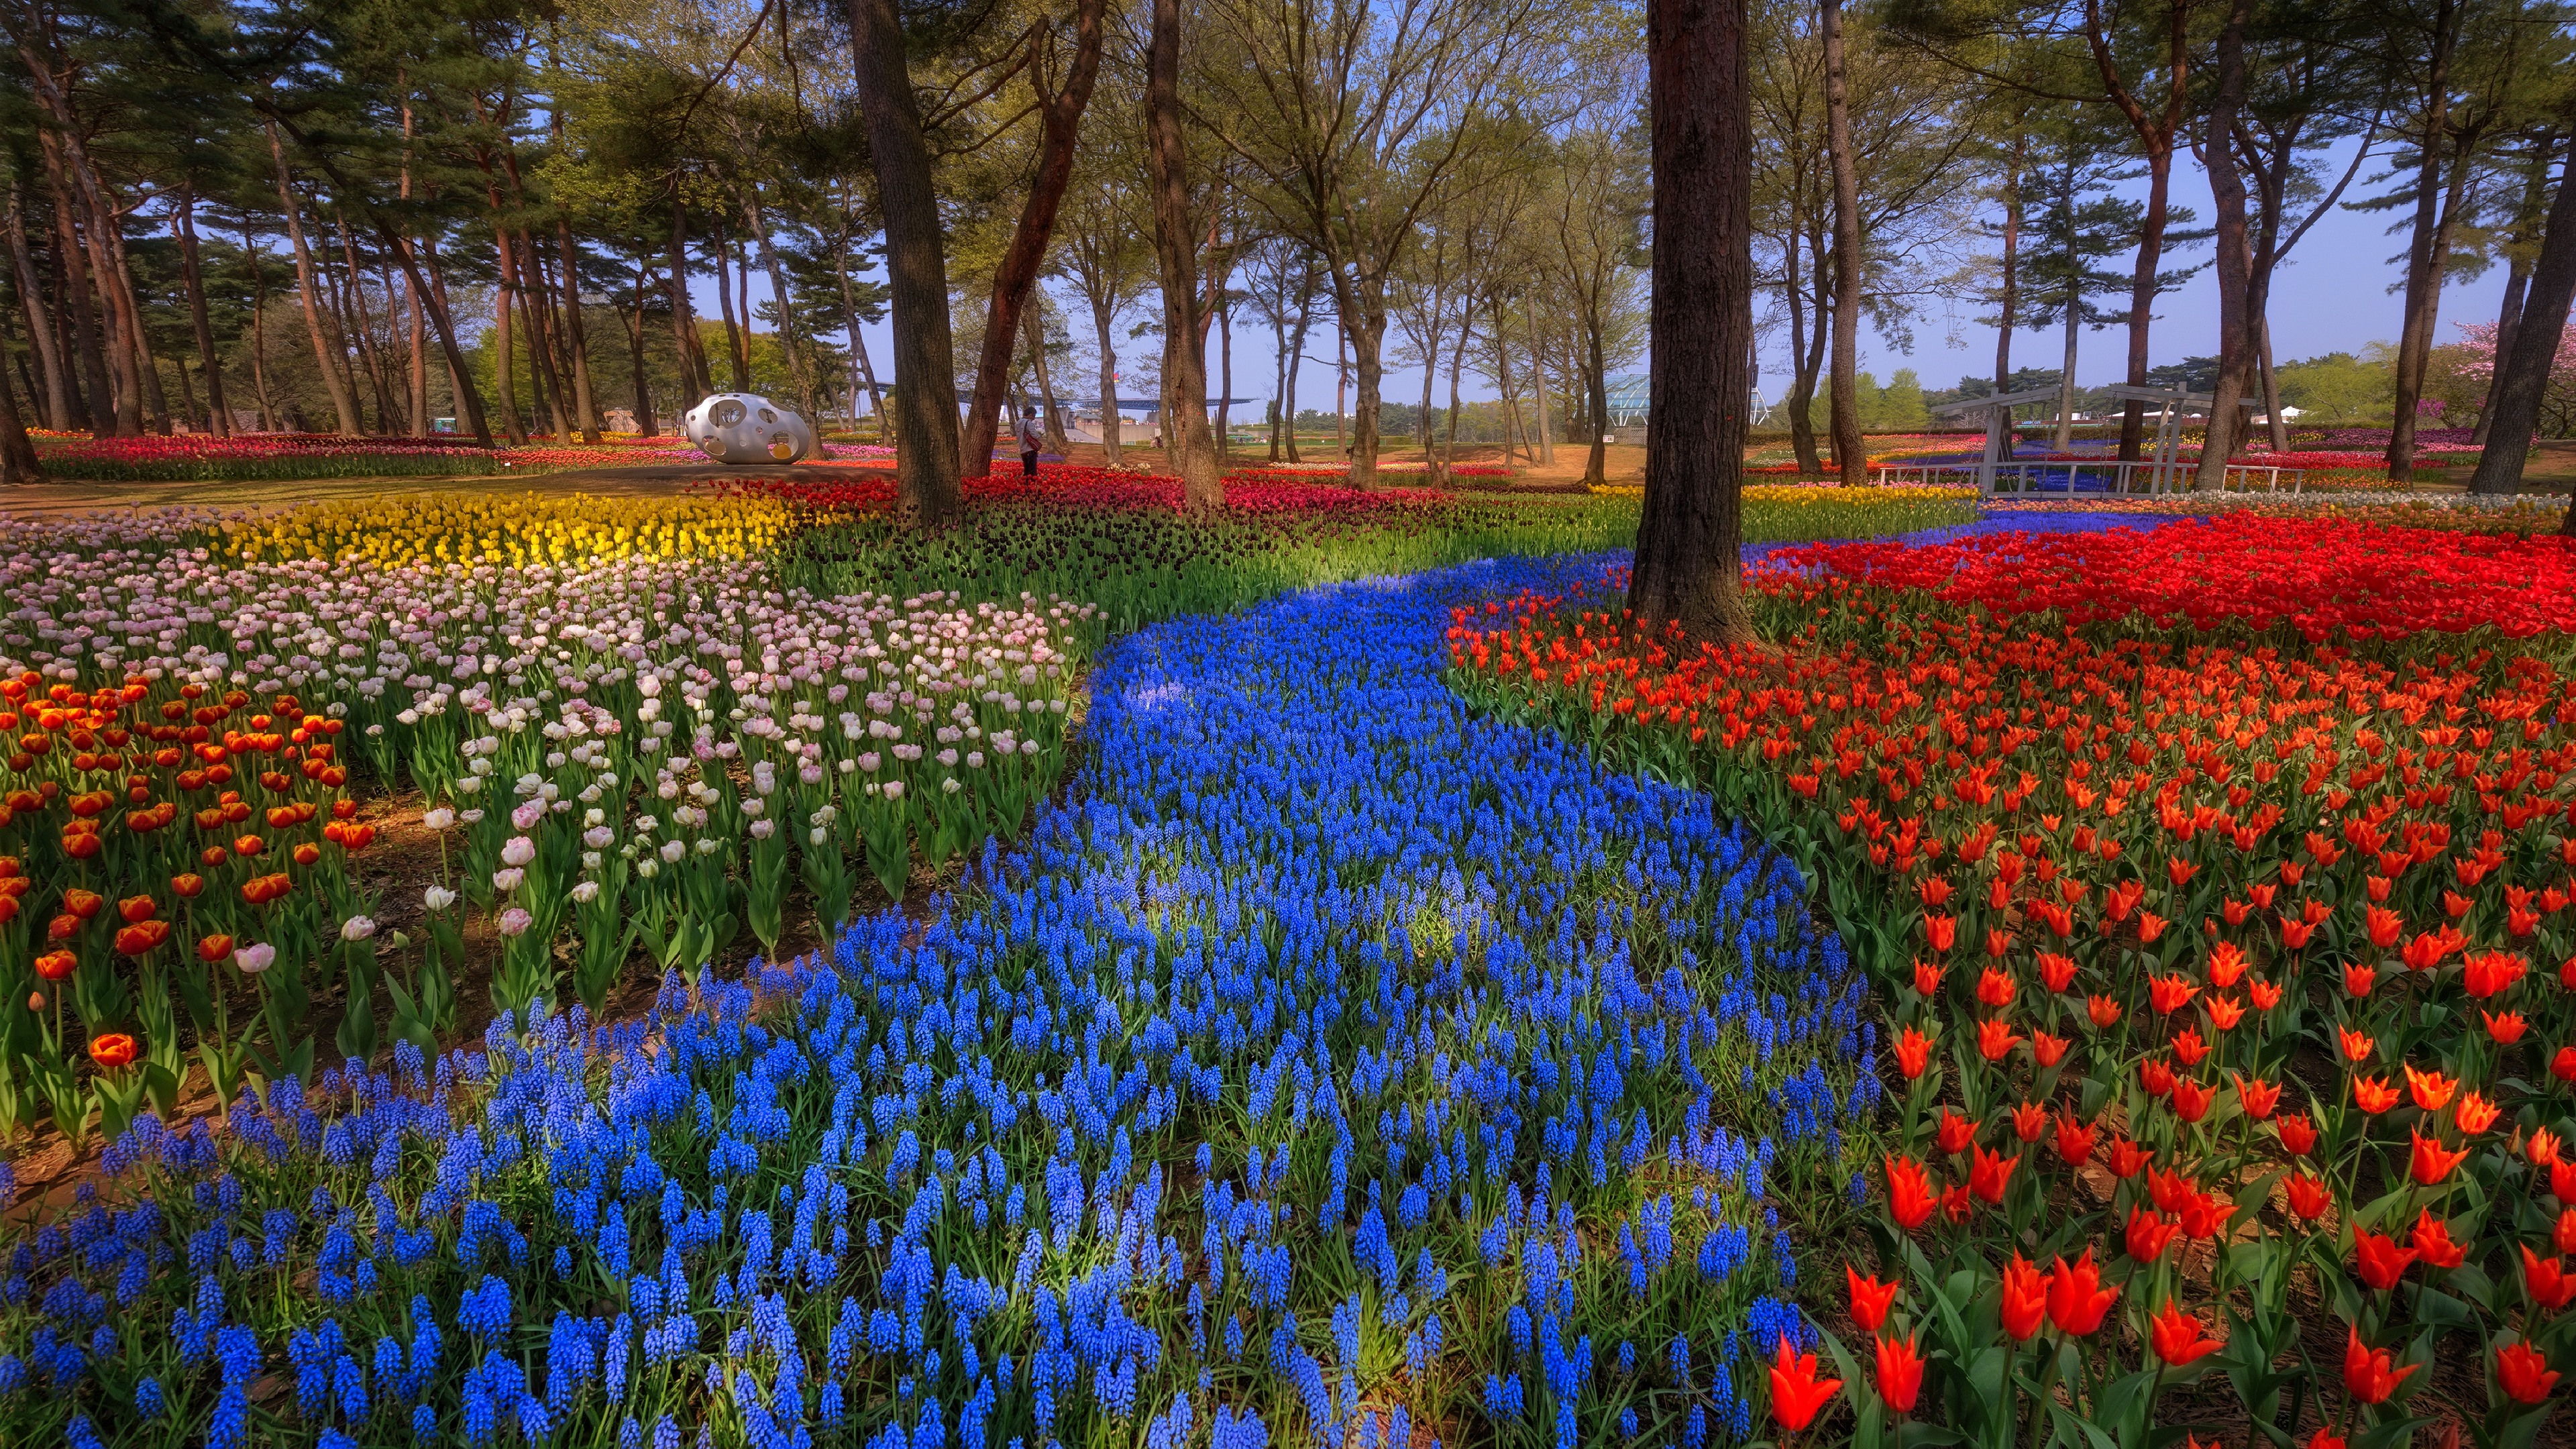 Wallpaper Japan Park Trees Colorful Tulips Spring